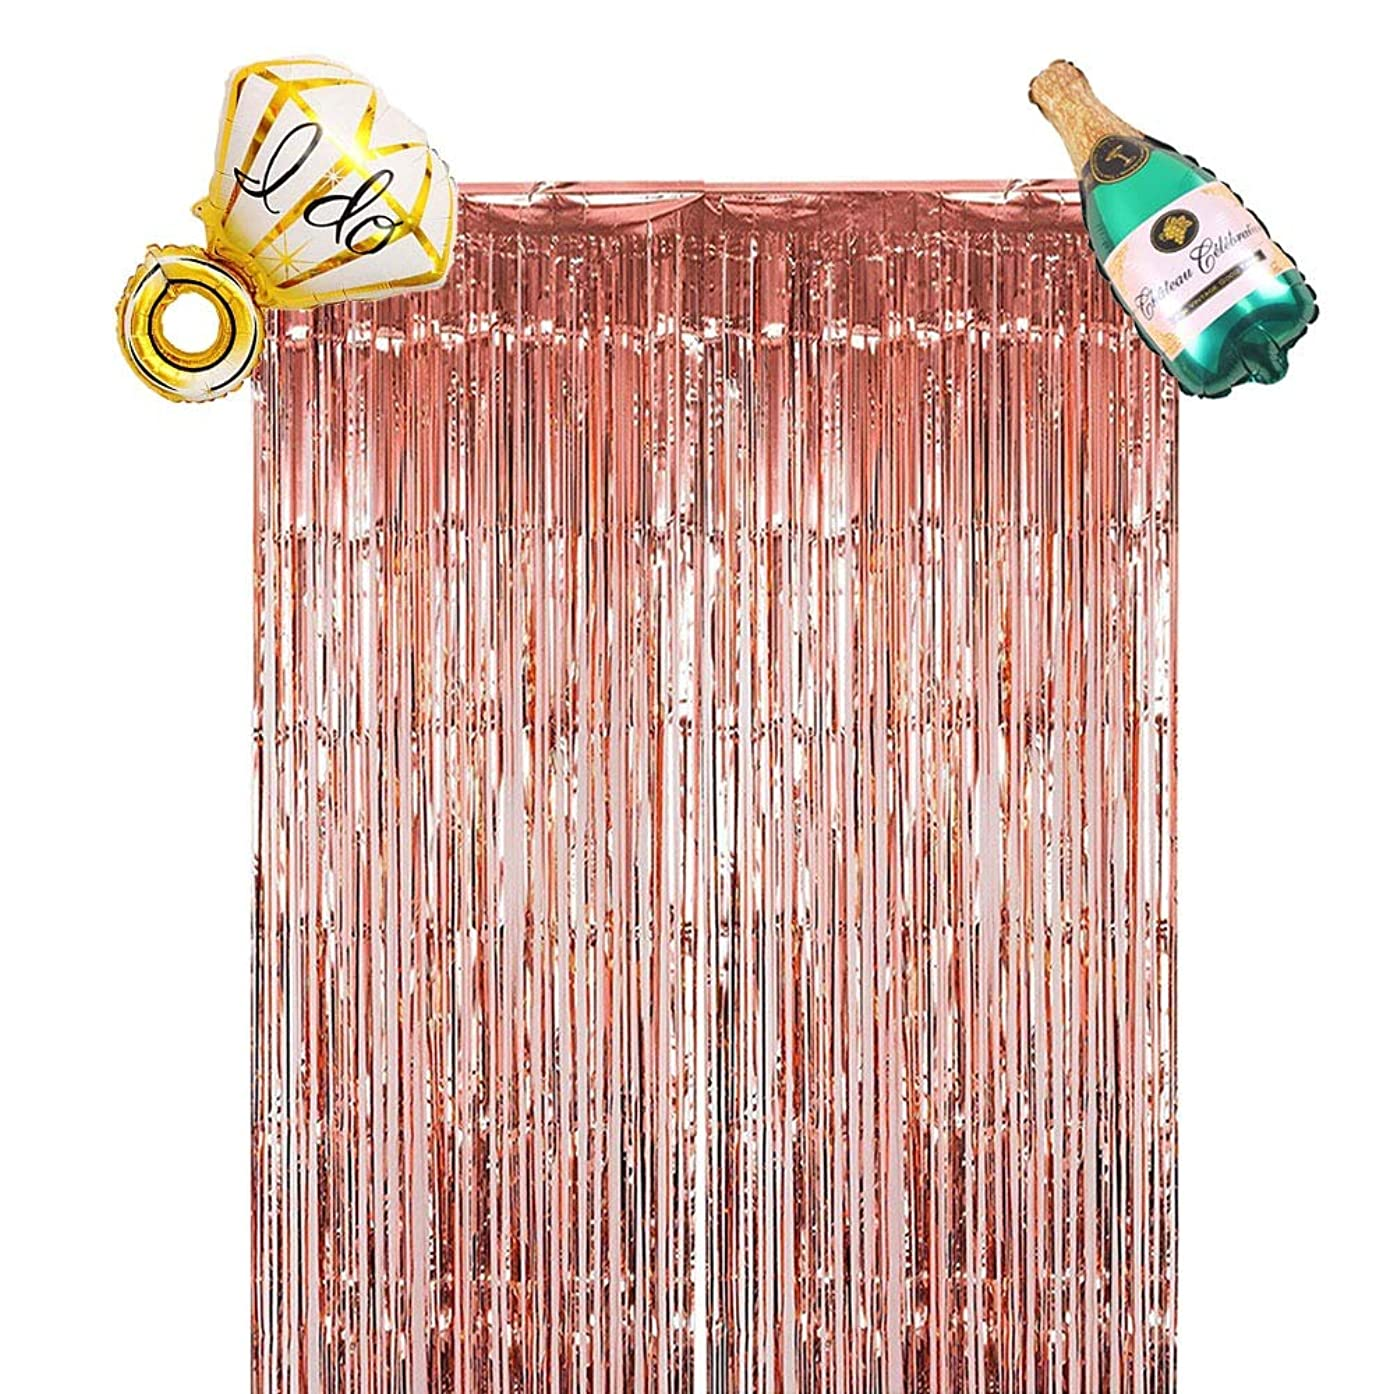 Metallic Foil Fringe Curtain,(3.2x 9.8 ft) 1 pack Decorations for Christmas, Birthday,  bachelorette Backdrop, w/ ring and Champagne balloon, bachelorette party decorations set